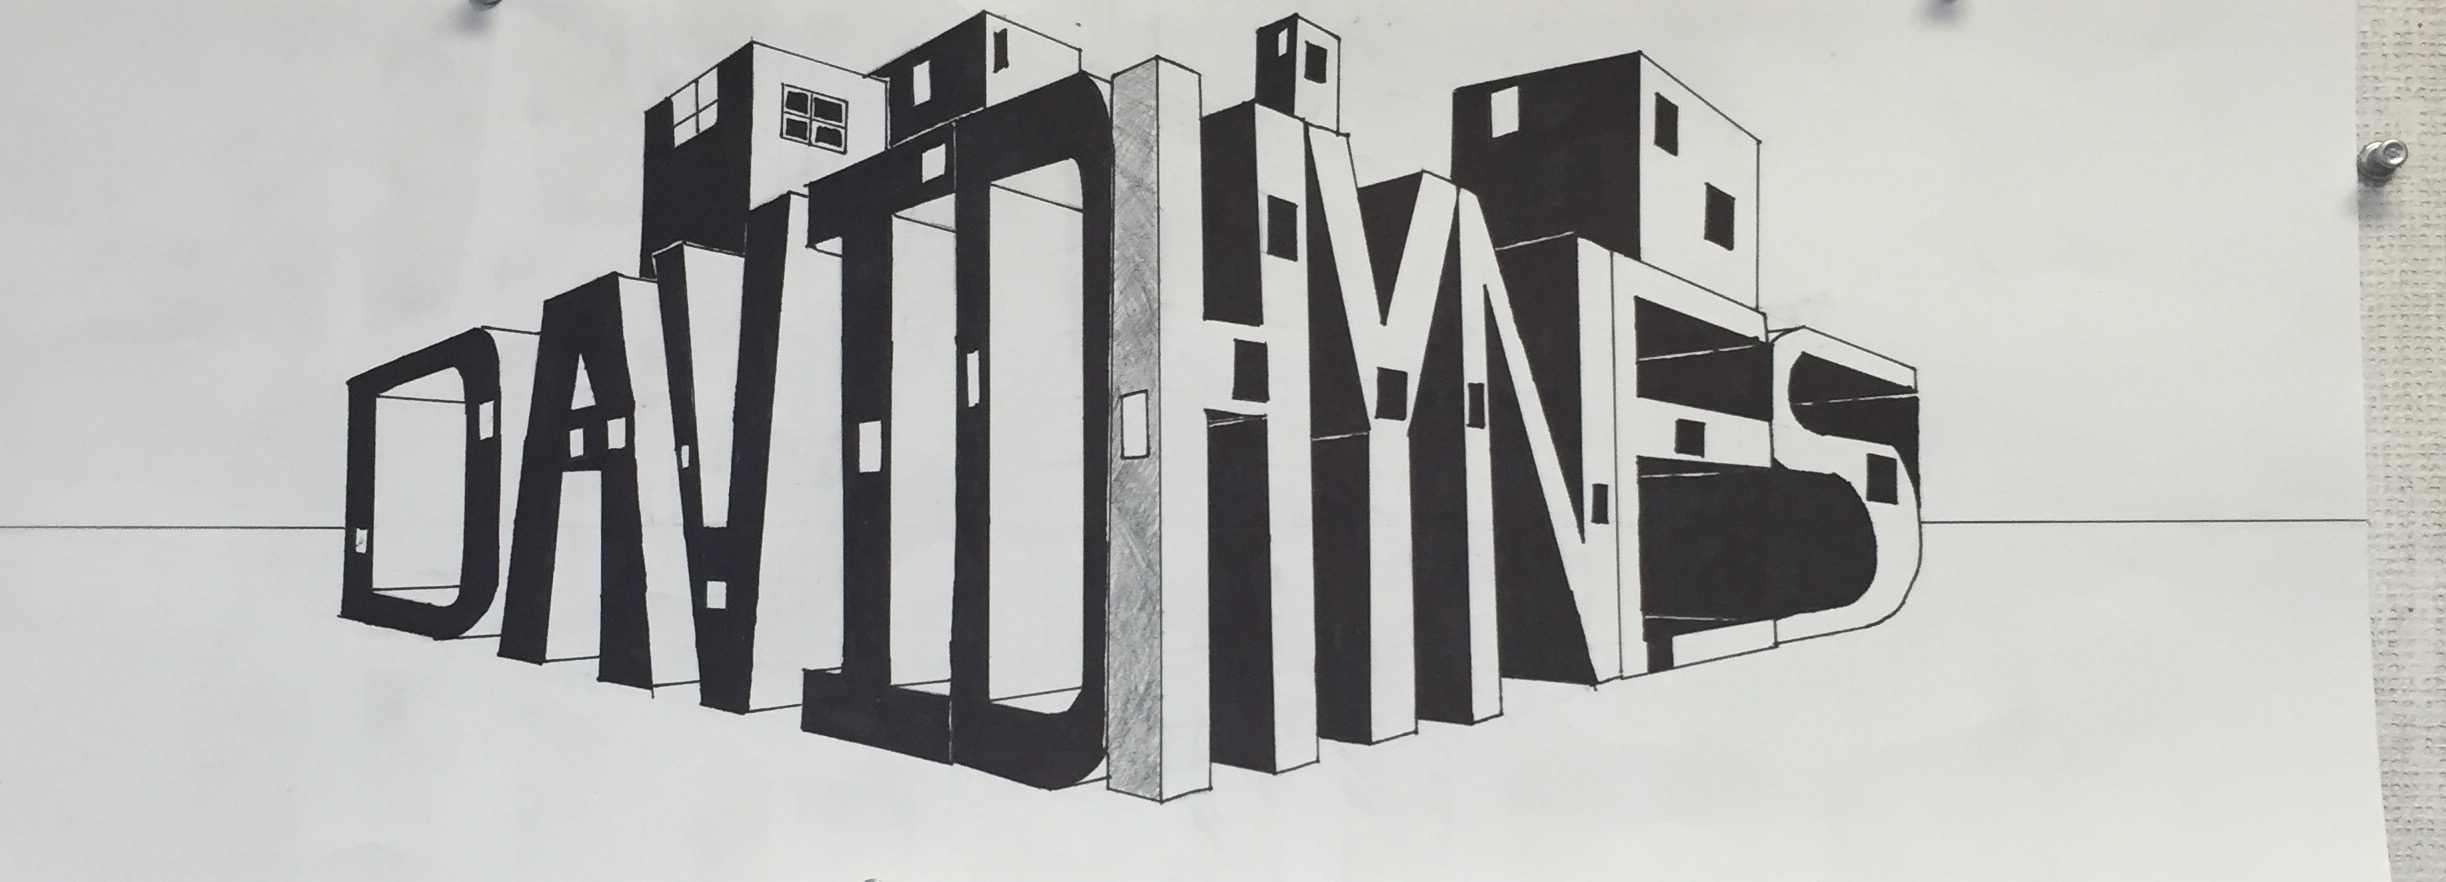 2 Point Perspective Name Drawing